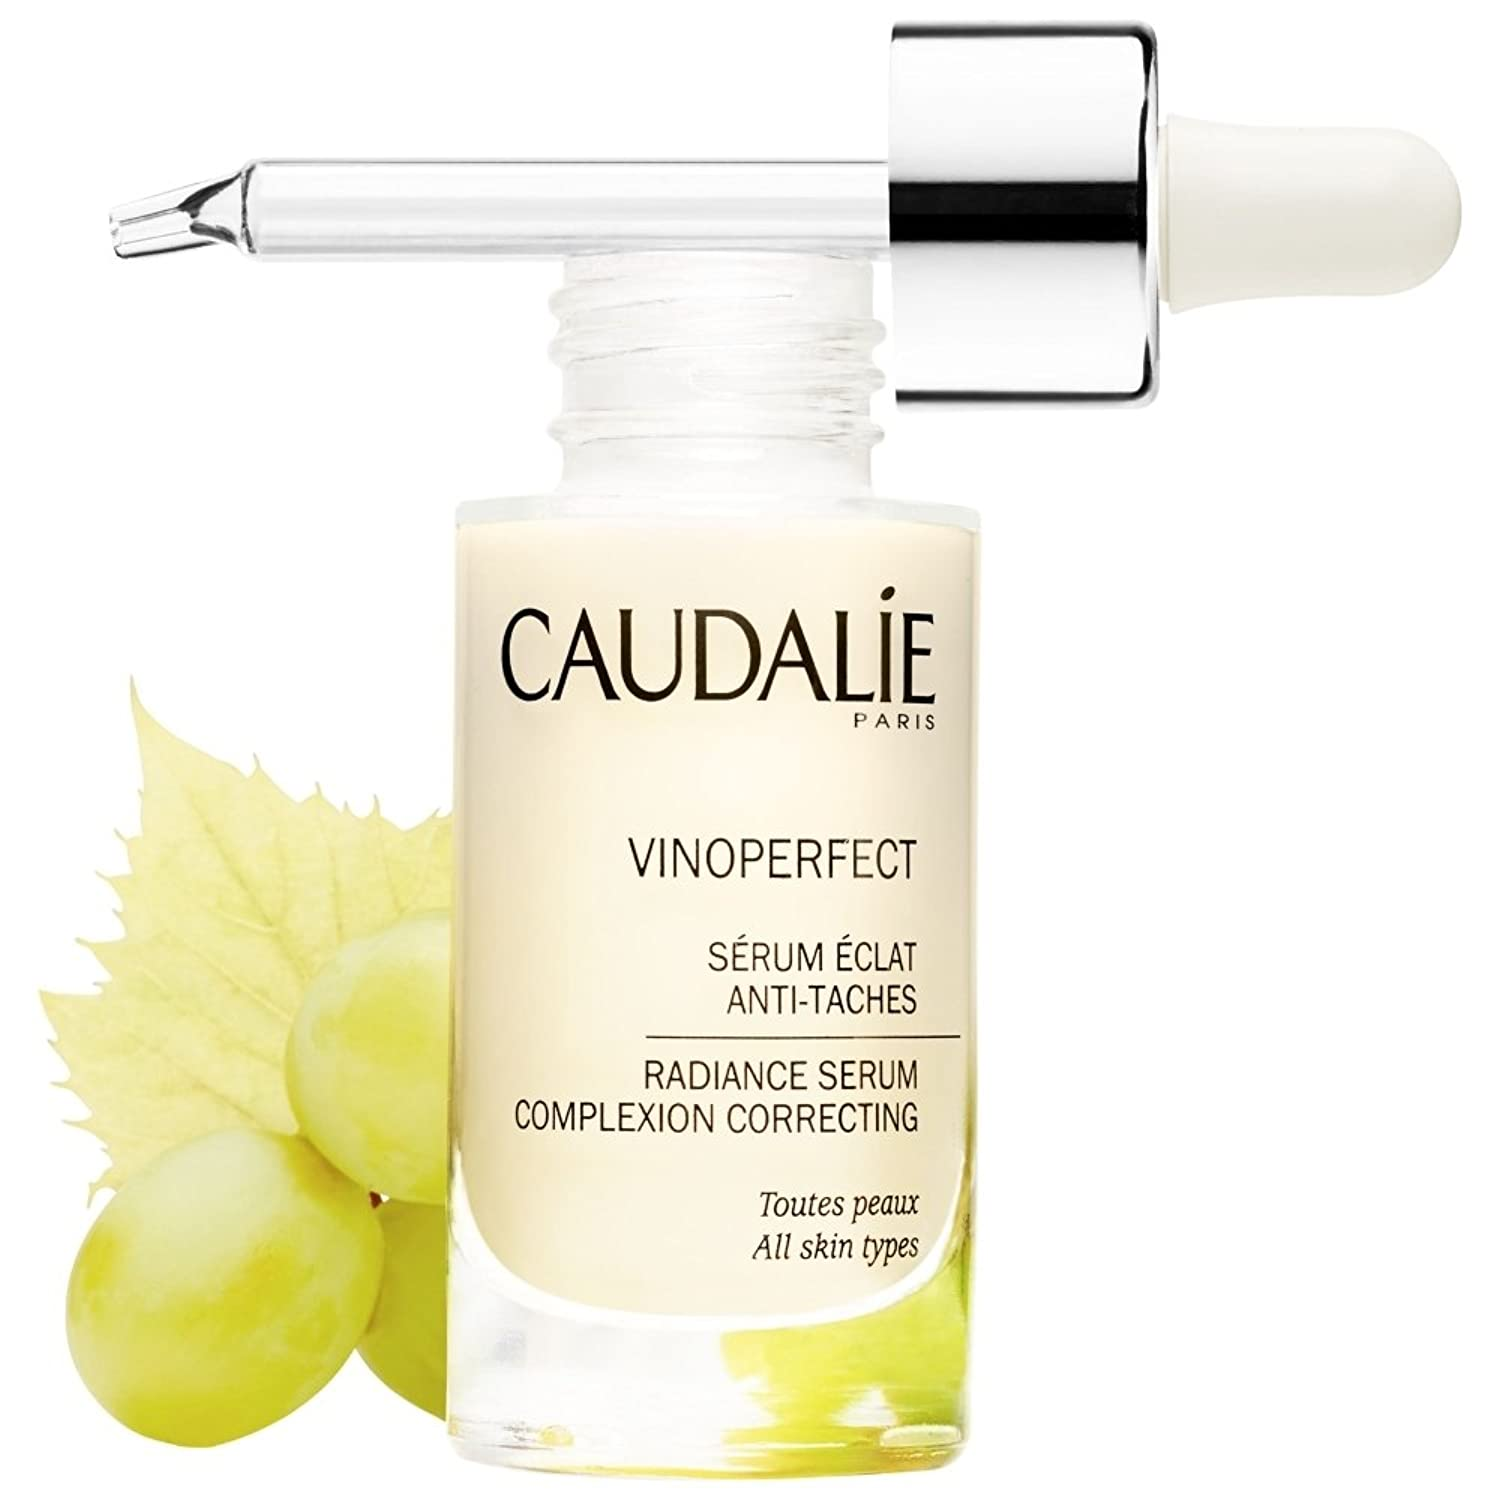 コーダリーのVinoperfect輝き血清30ミリリットル (Caudalie) (x6) - Caudalie Vinoperfect Radiance Serum 30ml (Pack of 6) [並行輸入品]